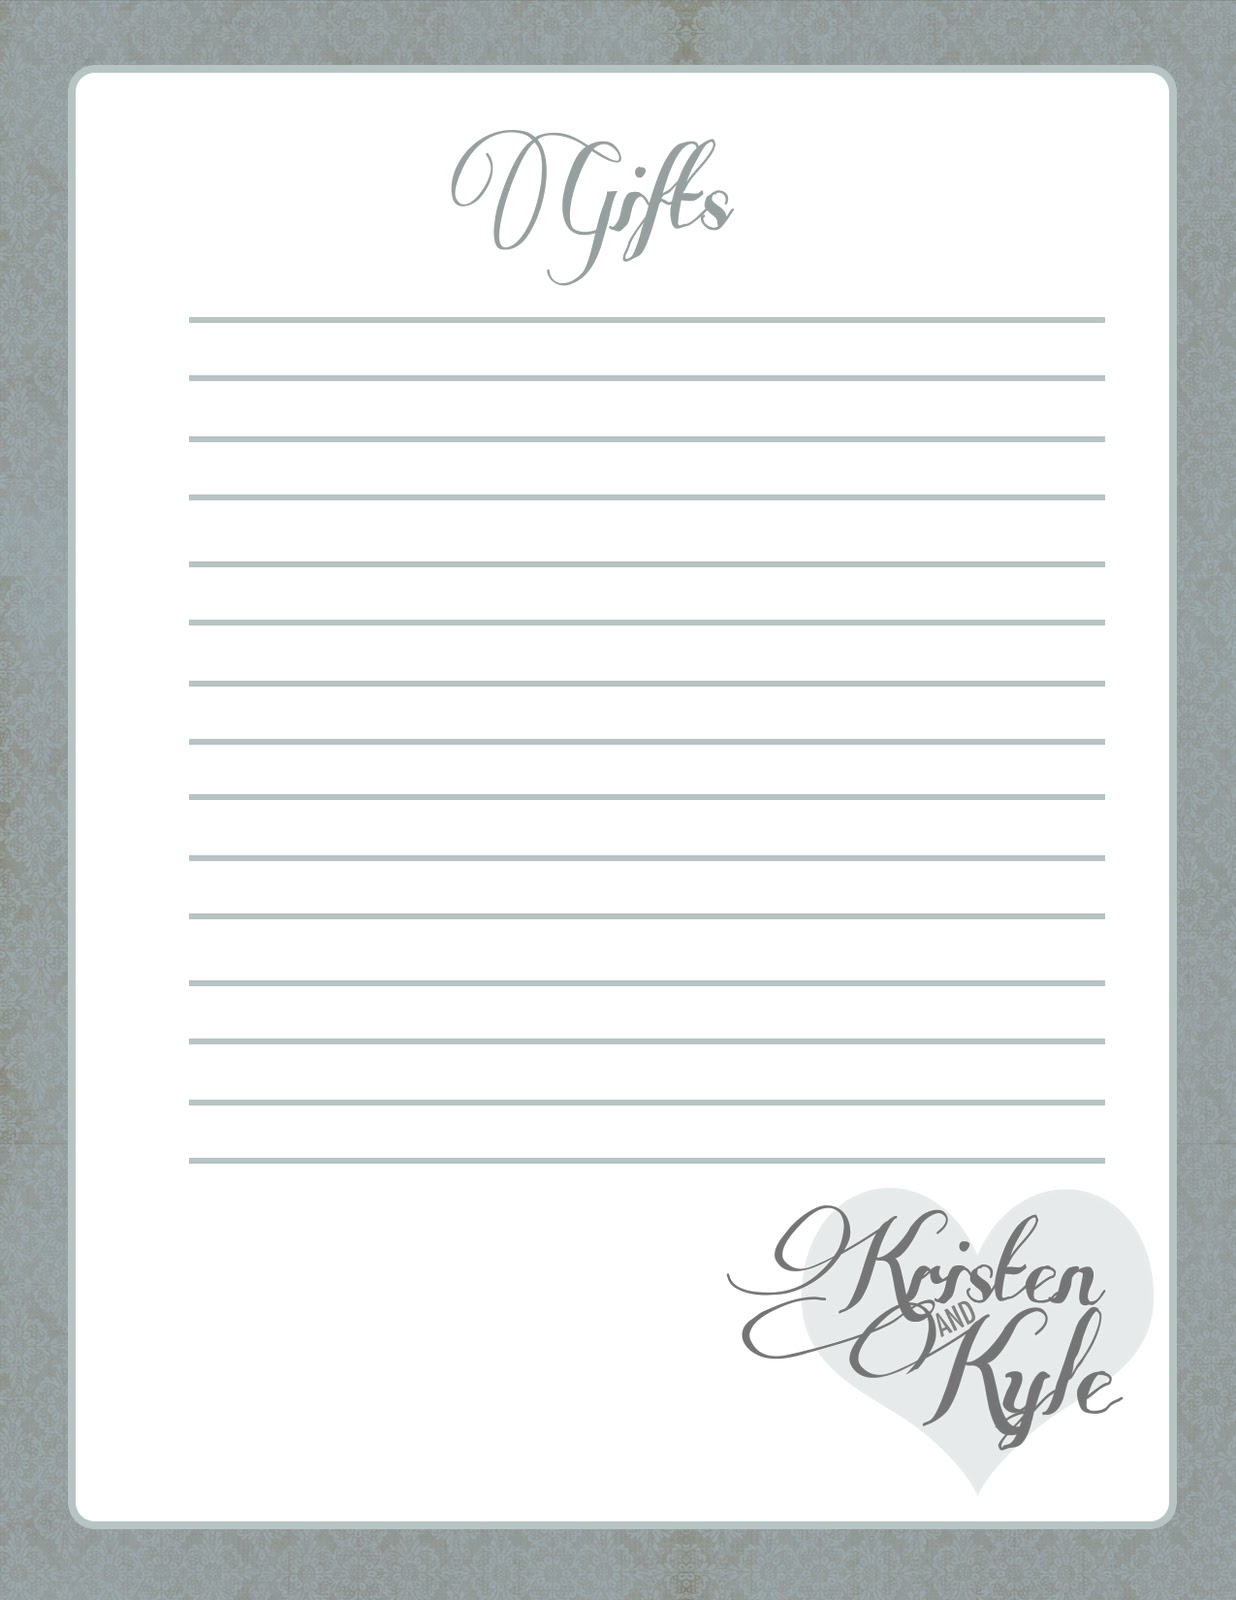 Bridal Shower Gift Record Template : Bridal+Shower+Gift+List+Template Baby Shower Gift List Event...